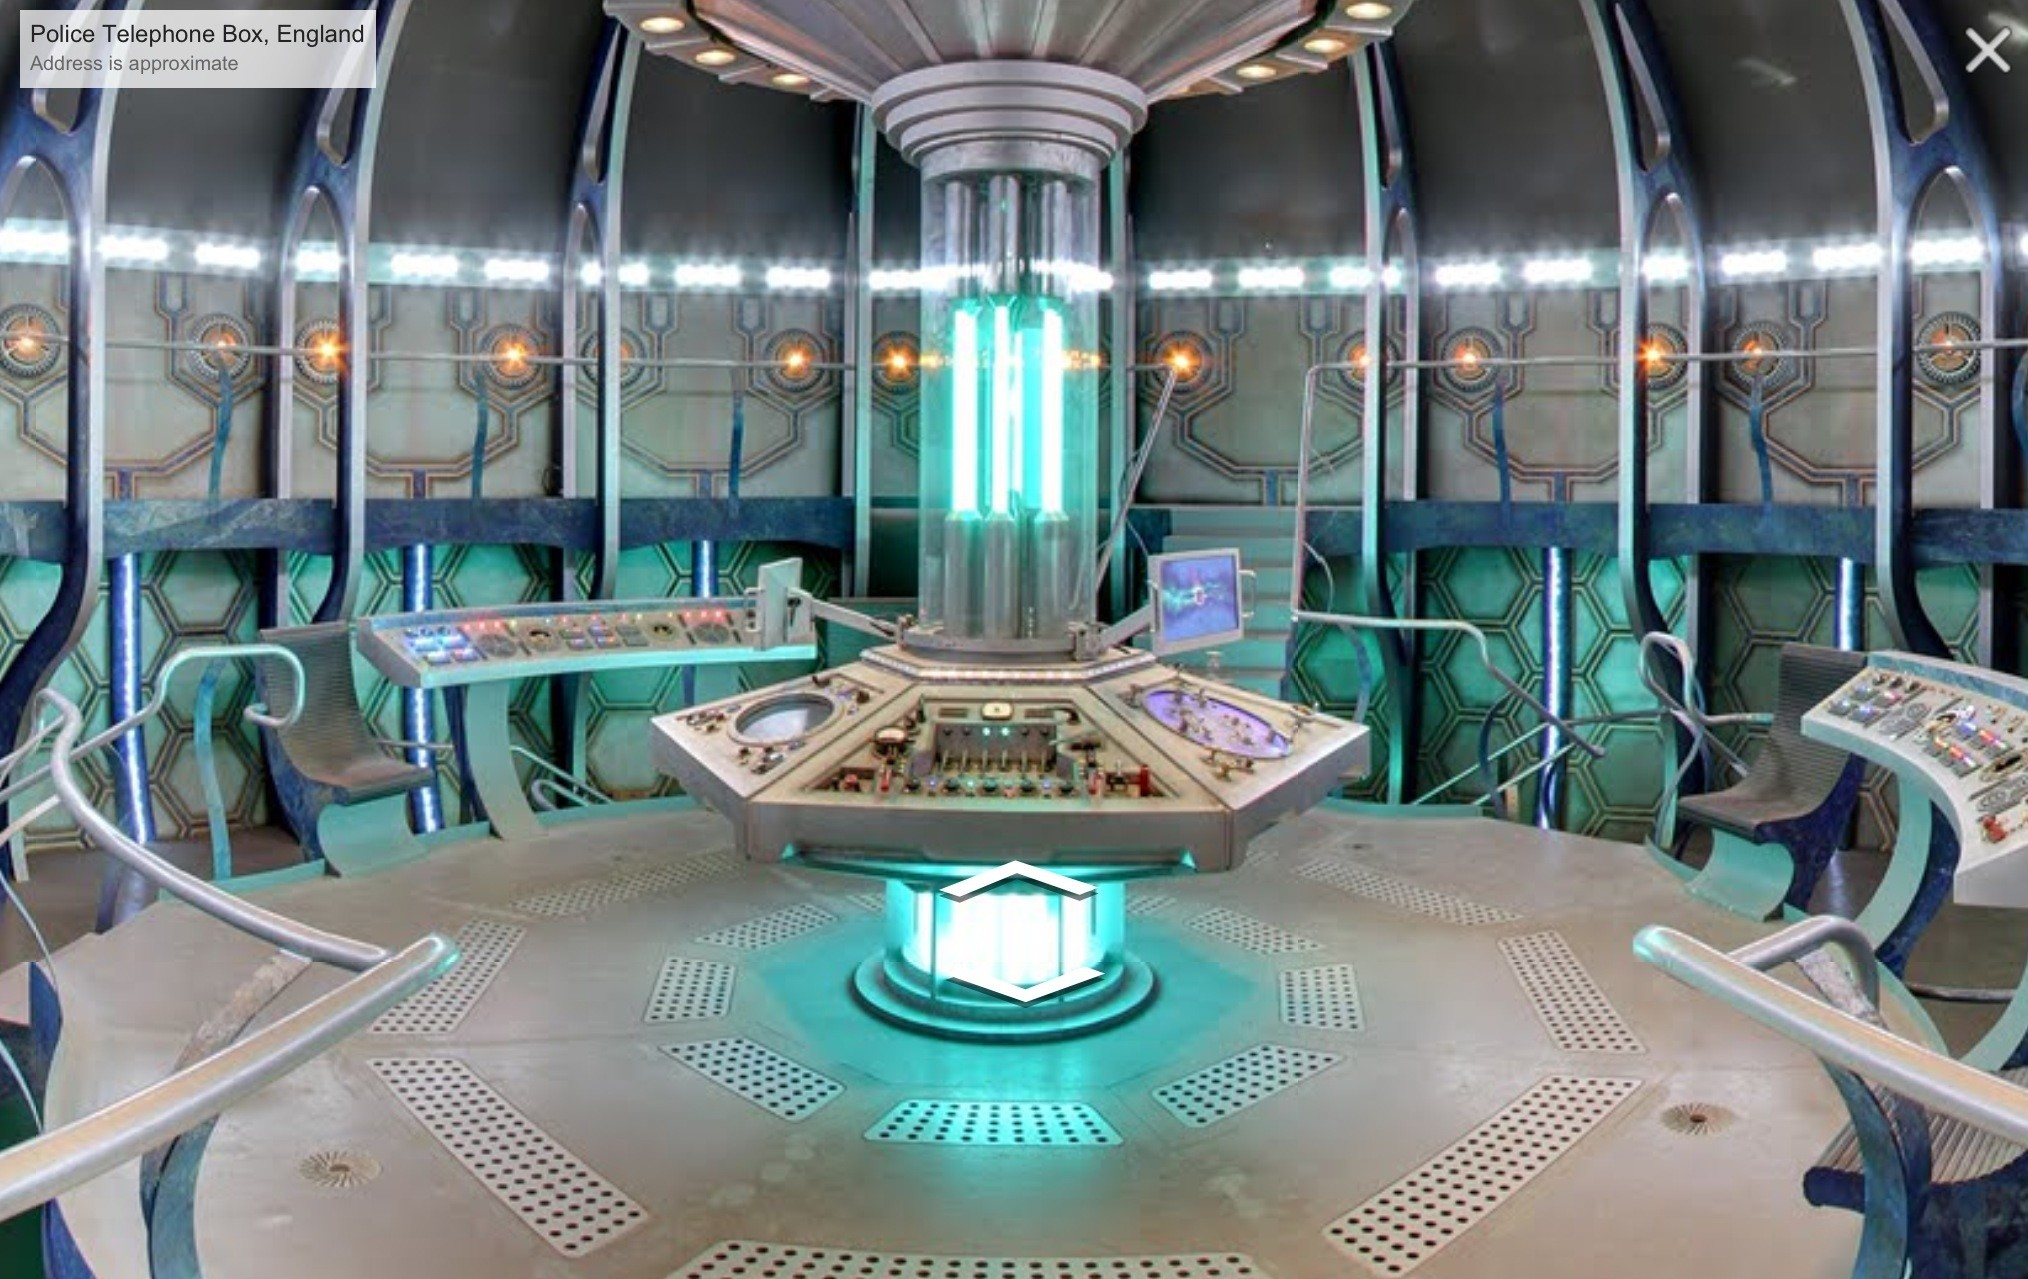 Tardis Interior Wallpaper 73 images